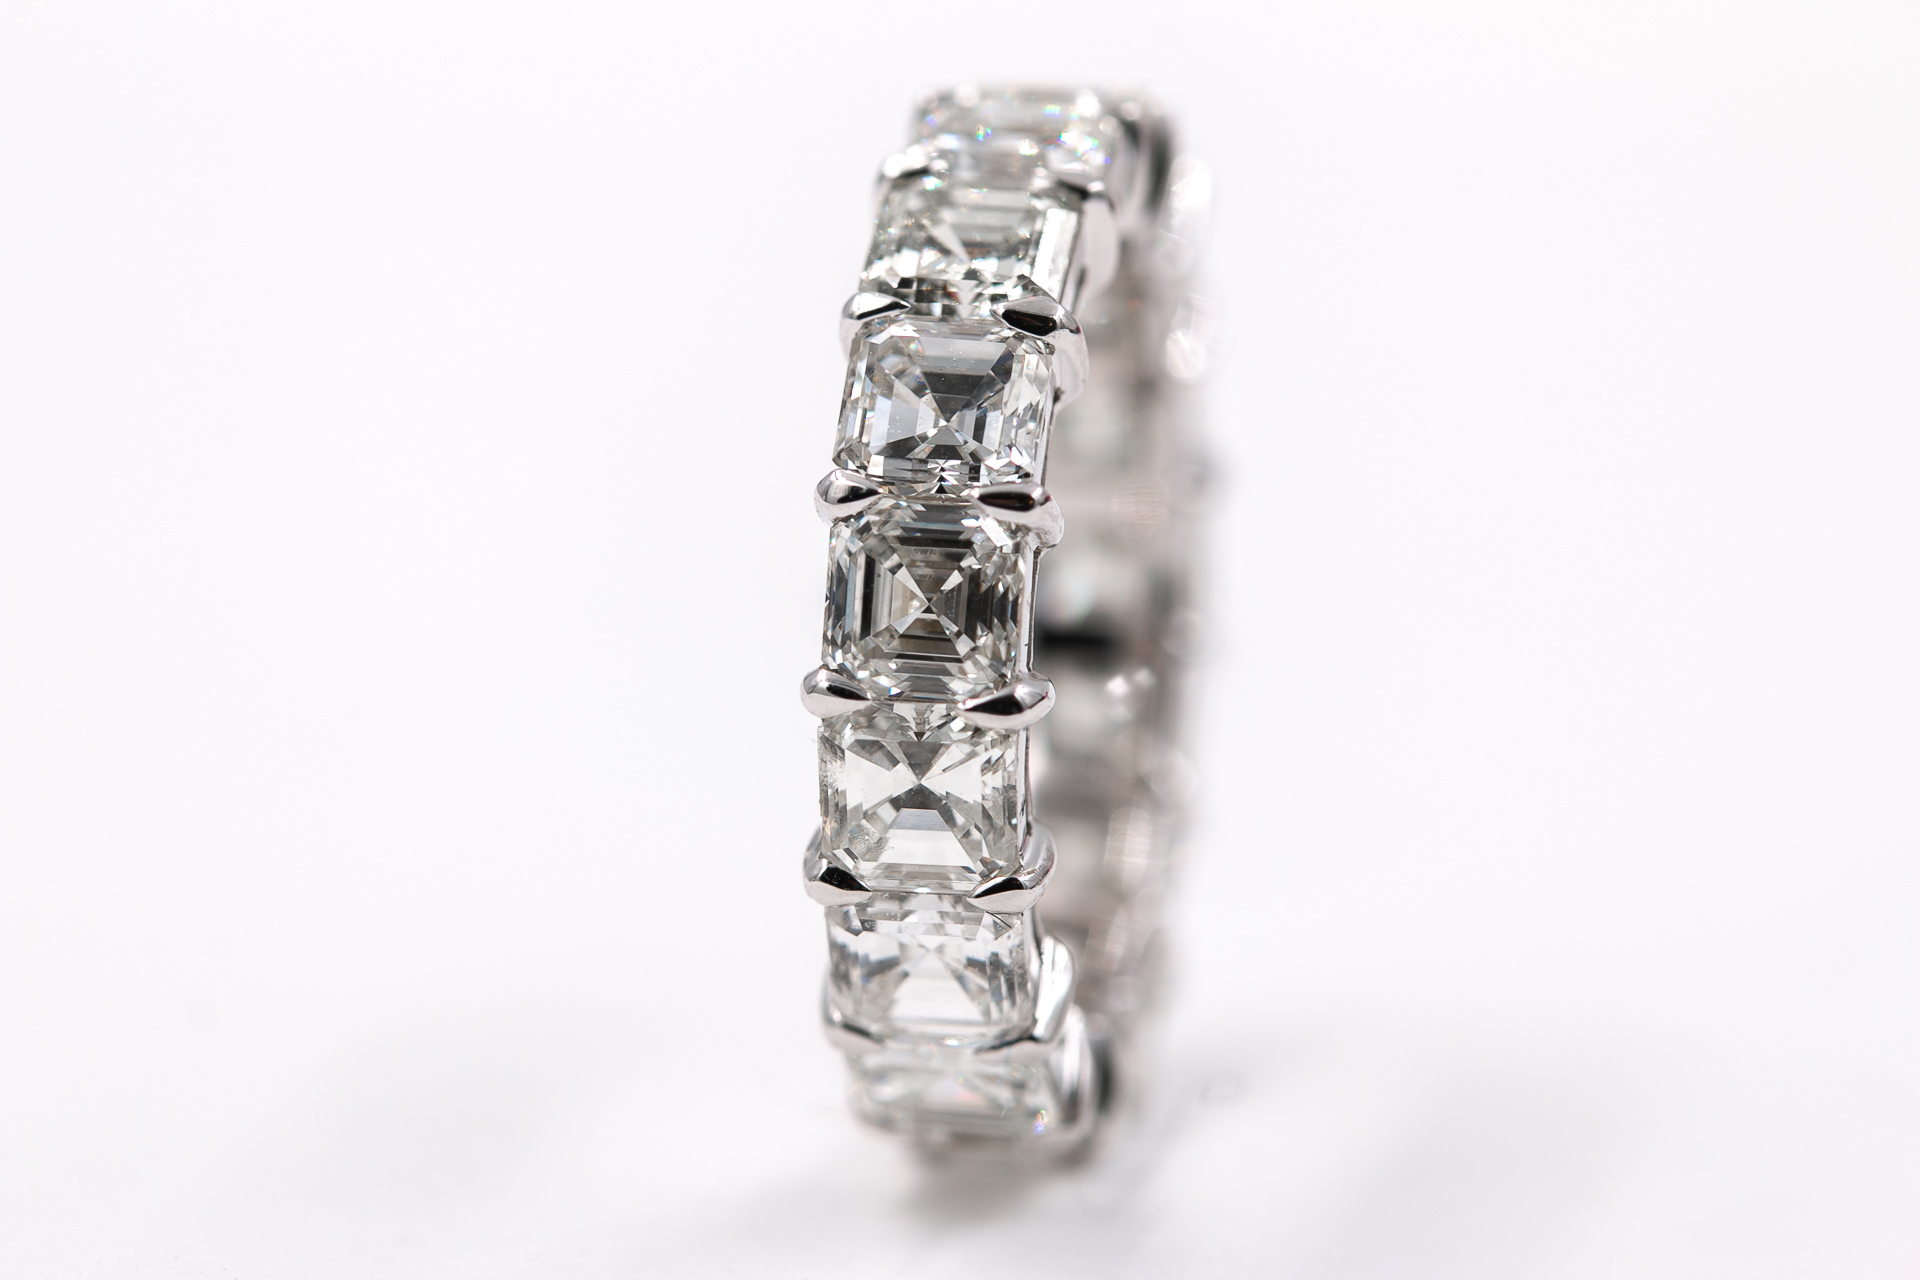 radiant-cut-eternity-band-diamonds-natural-3